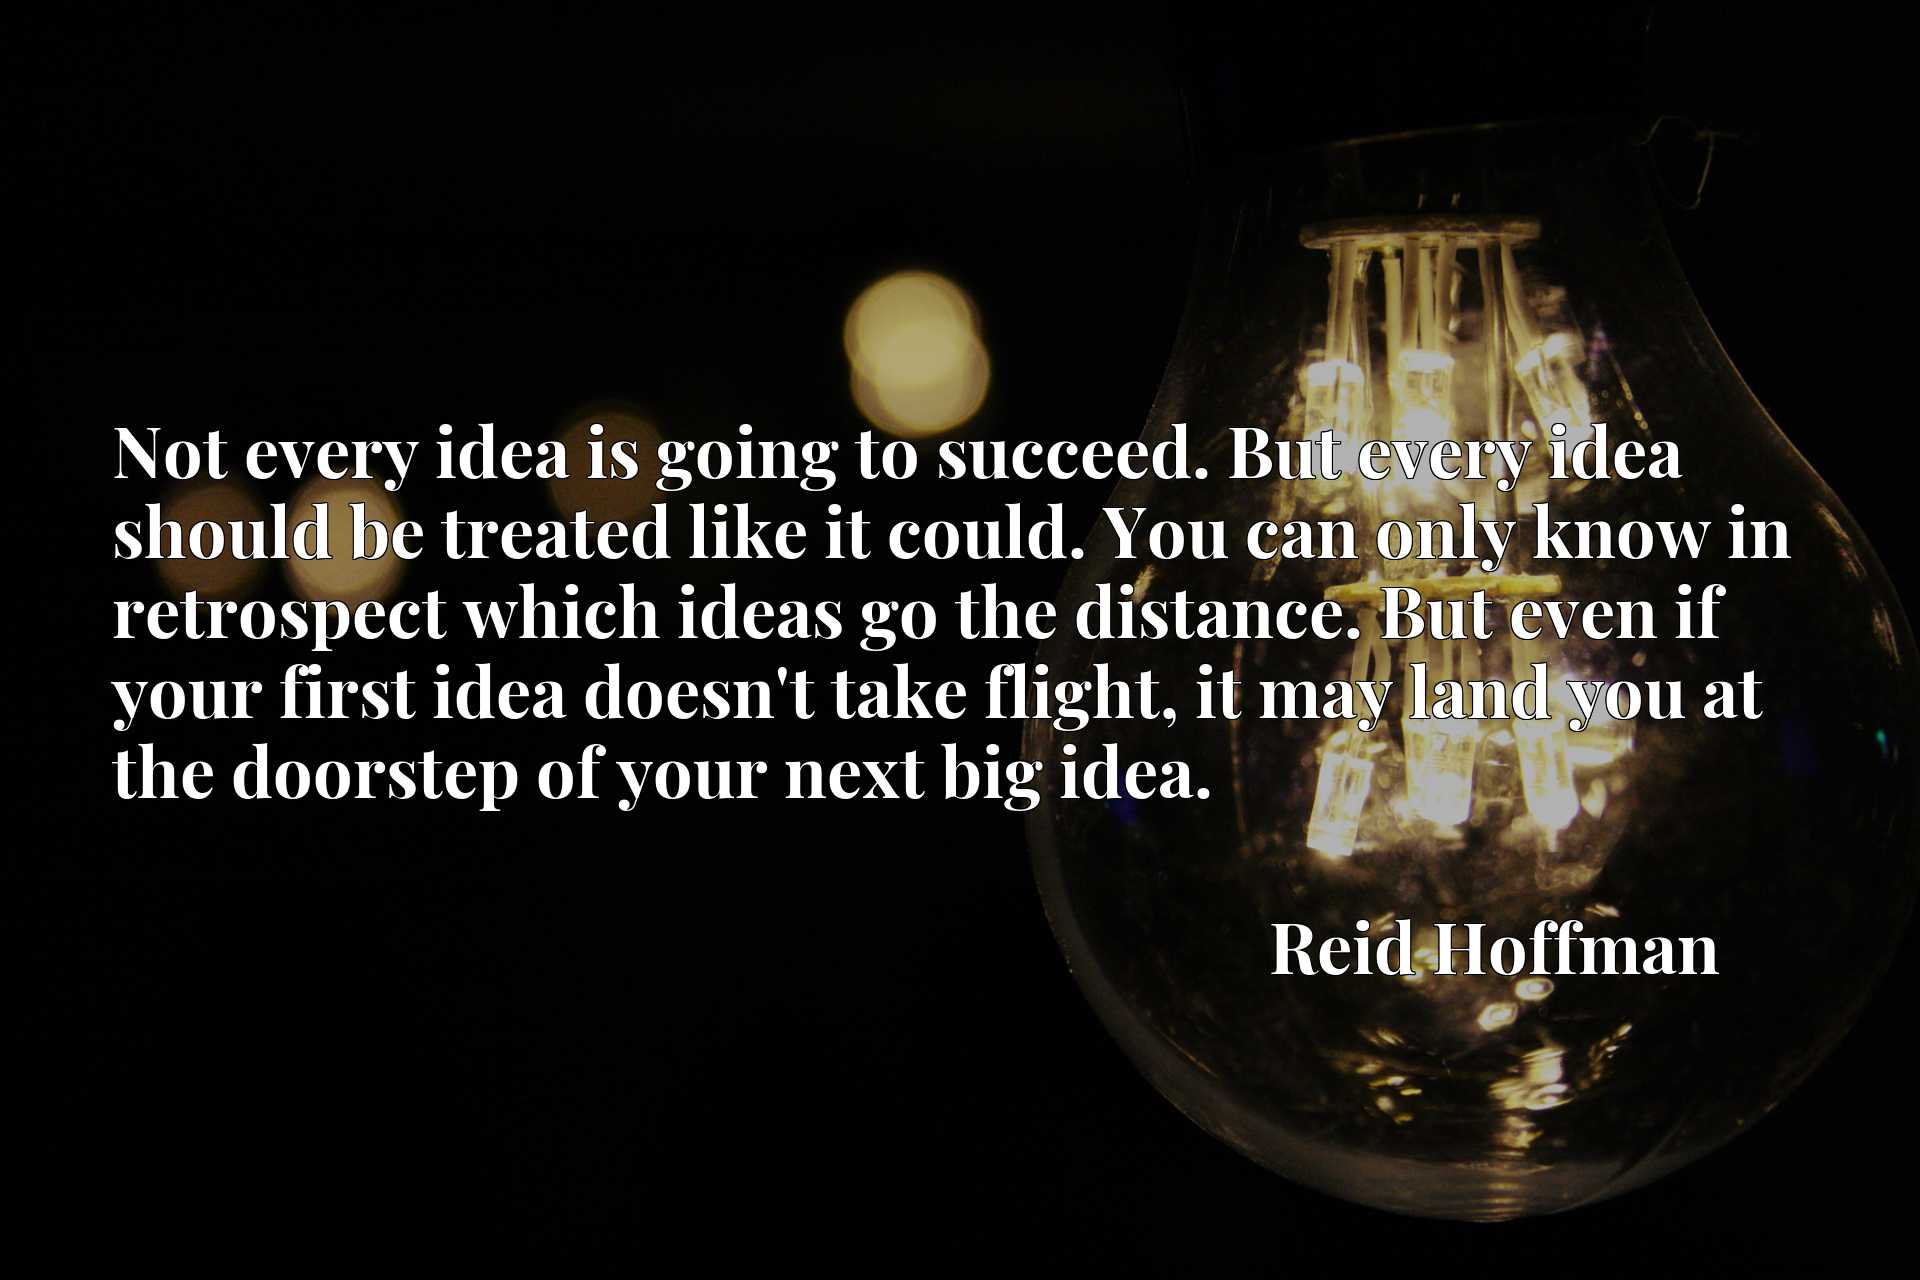 Not every idea is going to succeed. But every idea should be treated like it could. You can only know in retrospect which ideas go the distance. But even if your first idea doesn't take flight, it may land you at the doorstep of your next big idea.